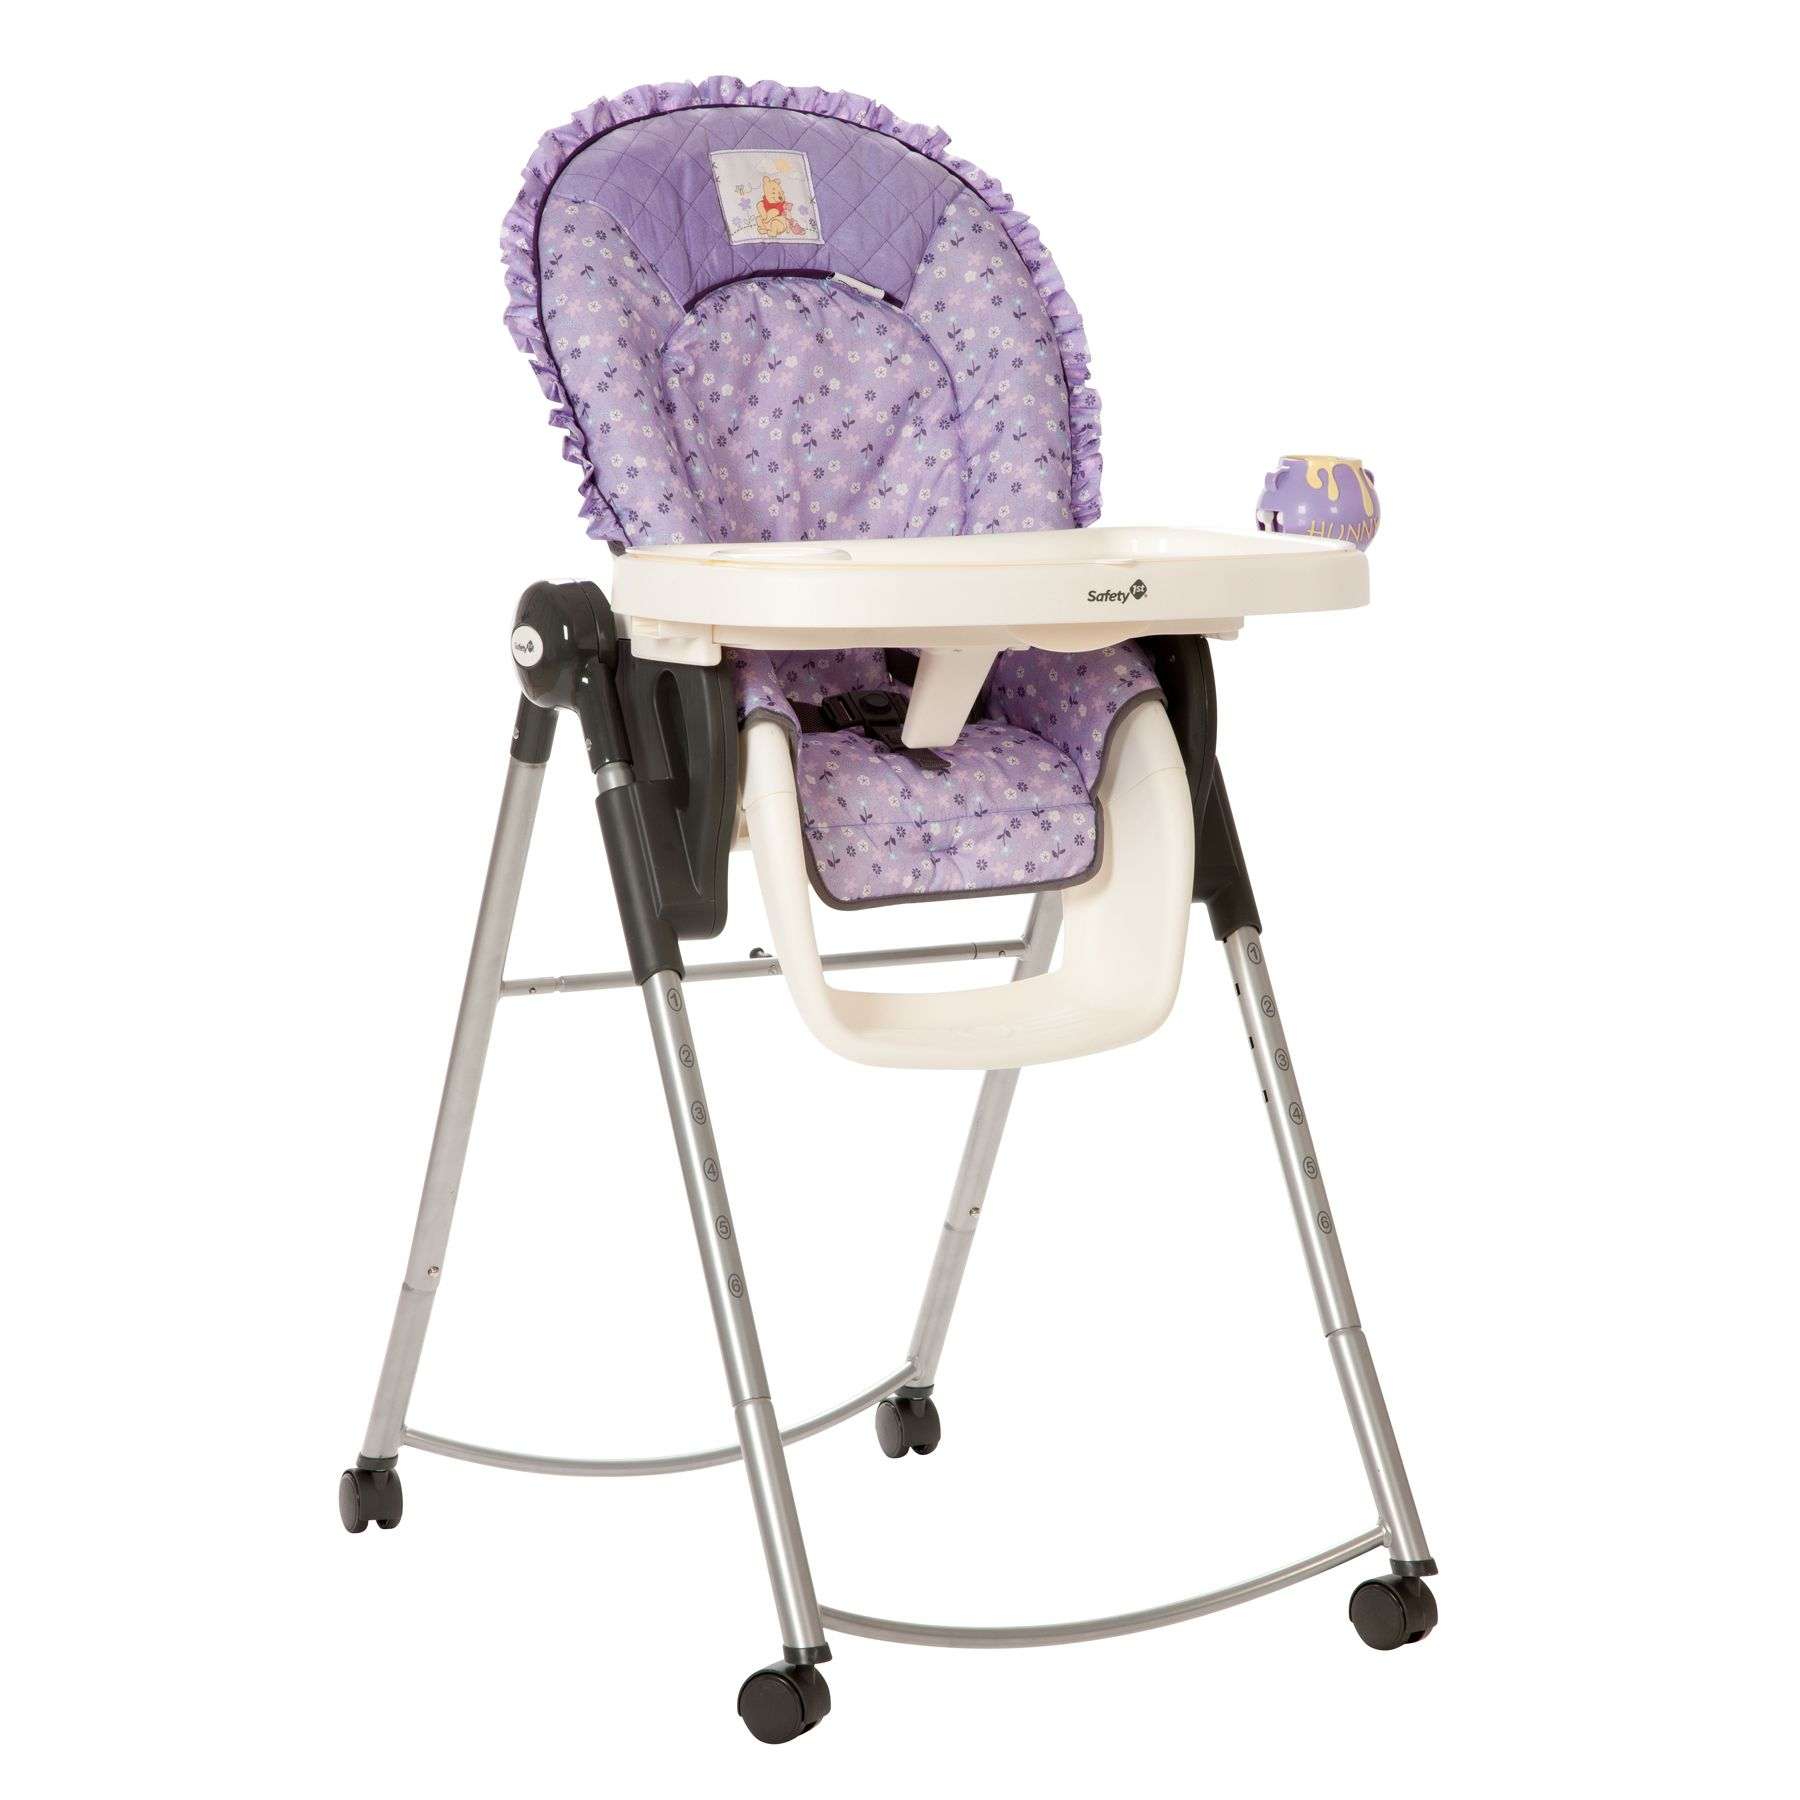 Pooh's Garden AdjusTable High Chair from Safety 1st Baby